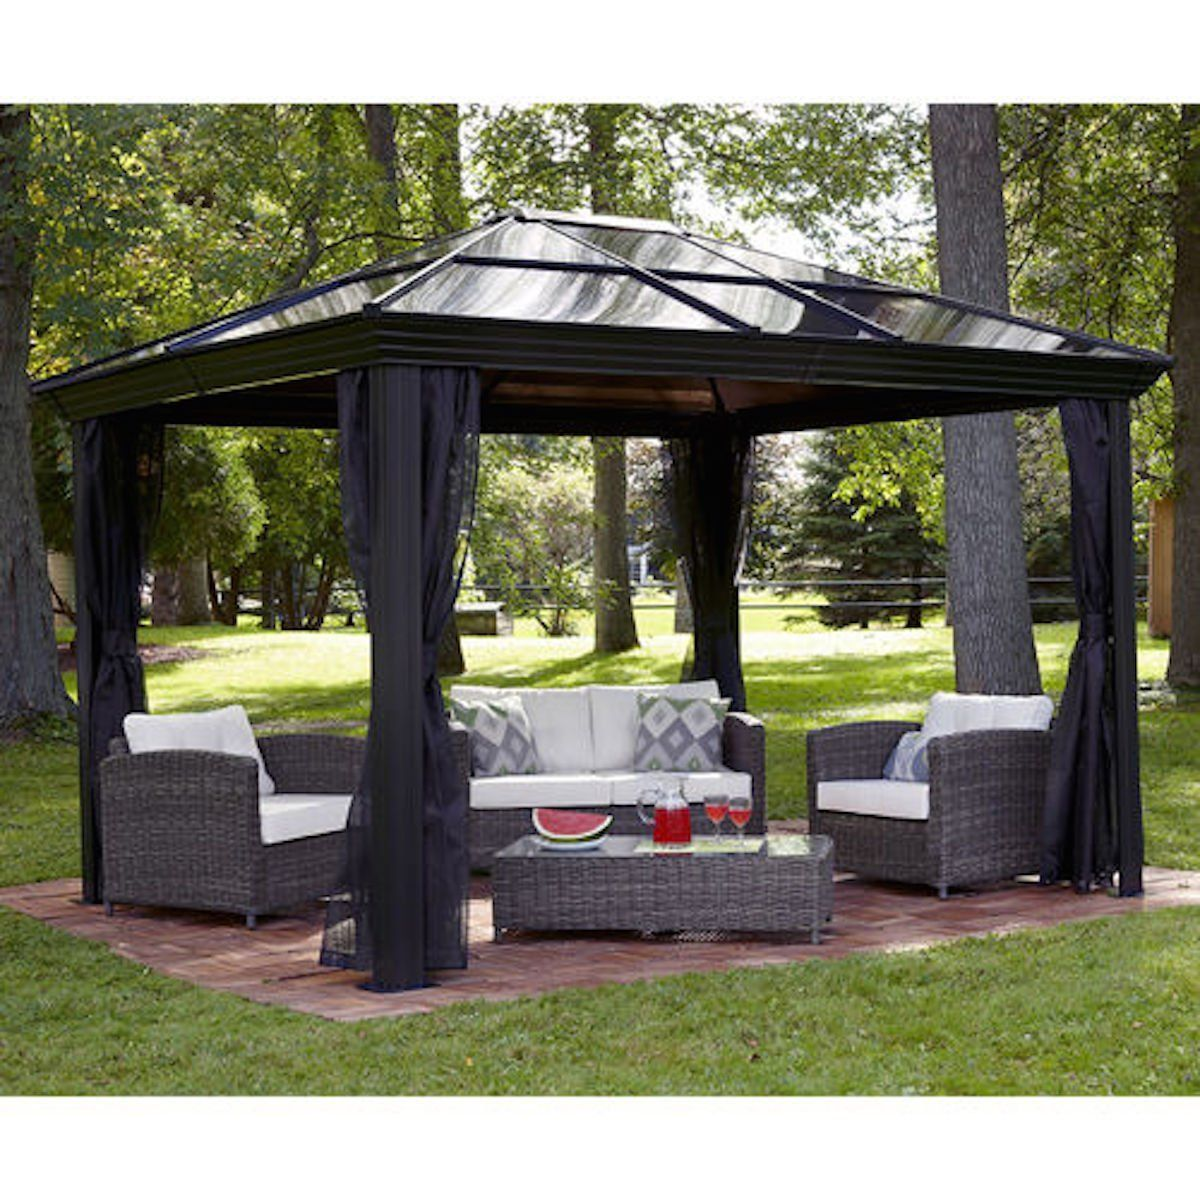 Gazebo canopy pergola this 10 x 12 hardtop gazebo tent for Plans for gazebo with fireplace